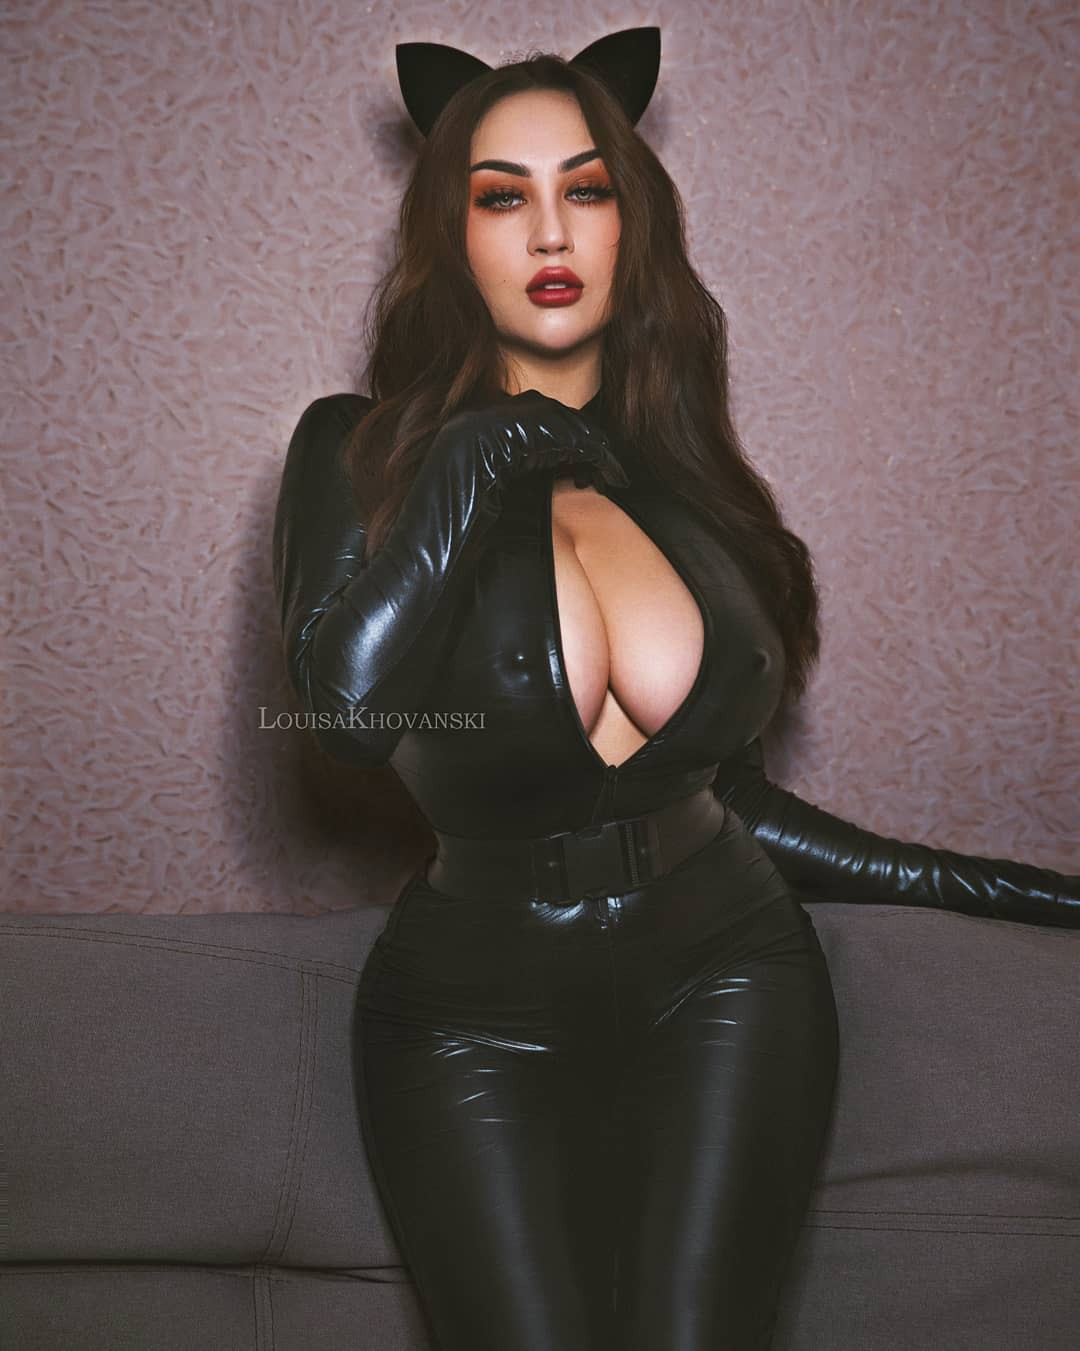 Louisa Khovanski dress latex clothing, fetish model outfit ideas